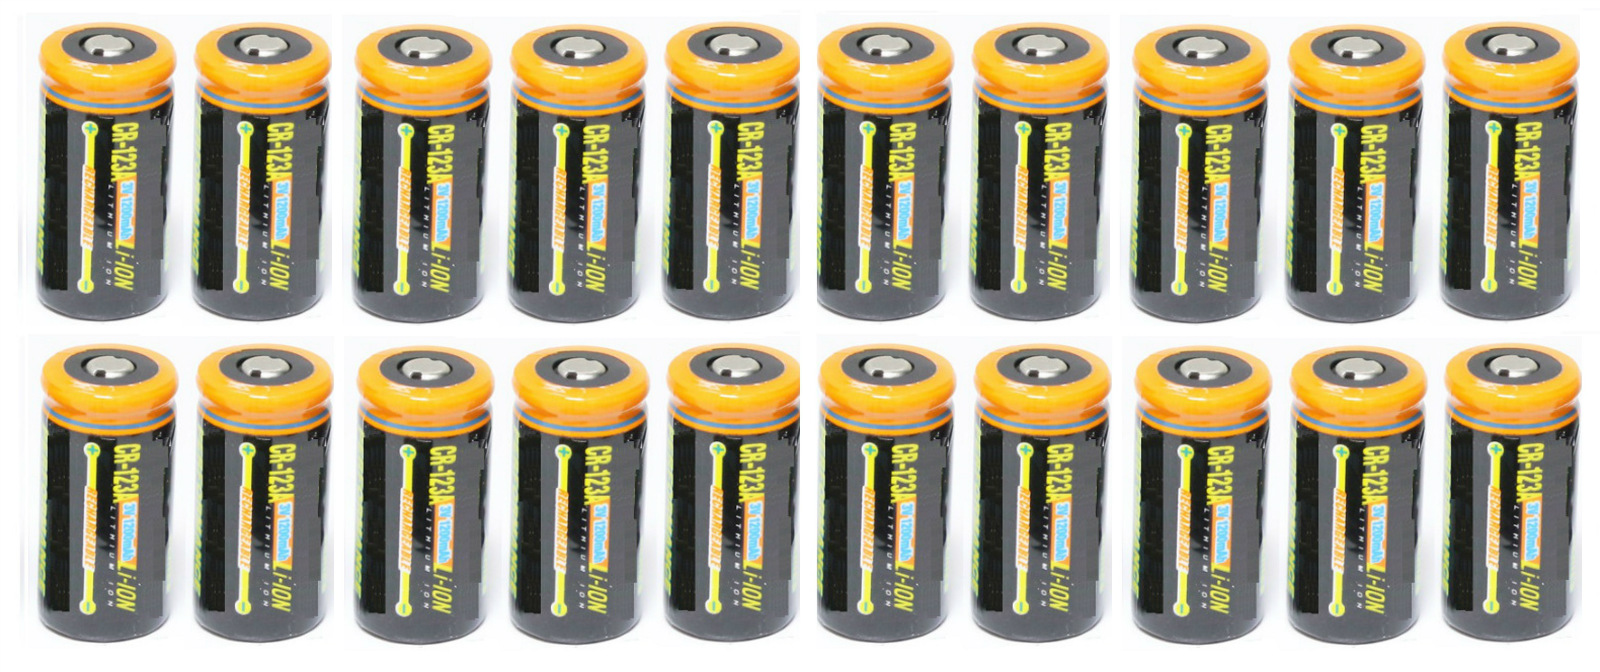 Ultimate Arms Gear 20 Pack CR123A 1200 mAh Lithium Rechargeable Batteries Battery For EOTECH Optics by